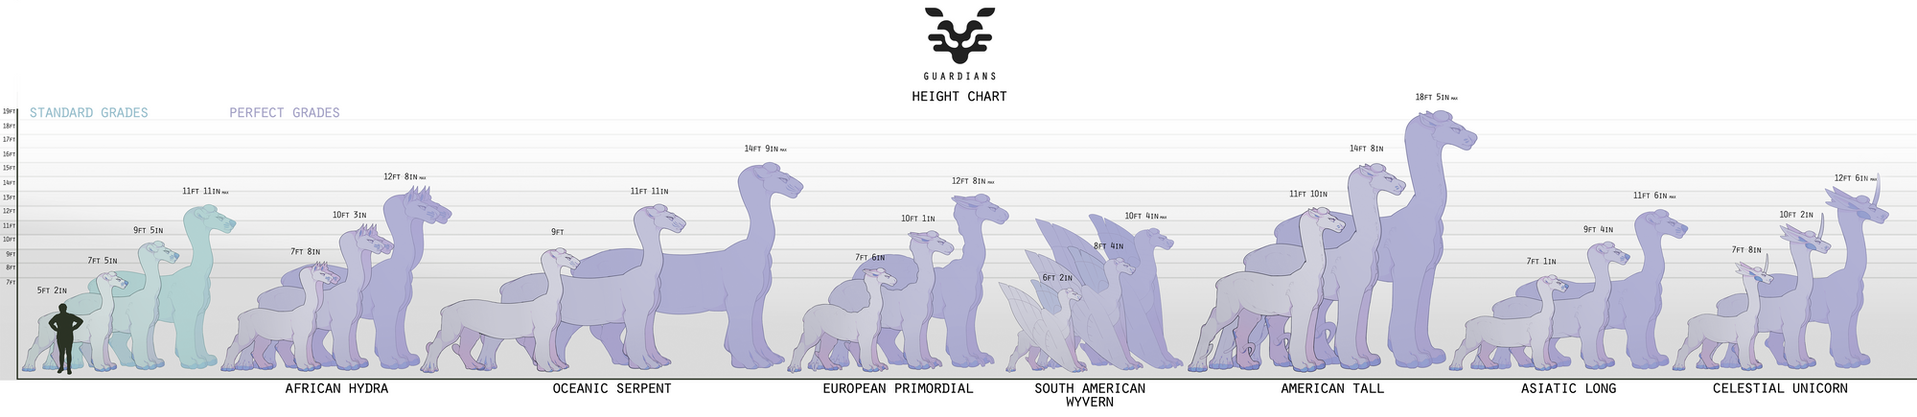 Guardian Height Chart 2.0 by Sindonic